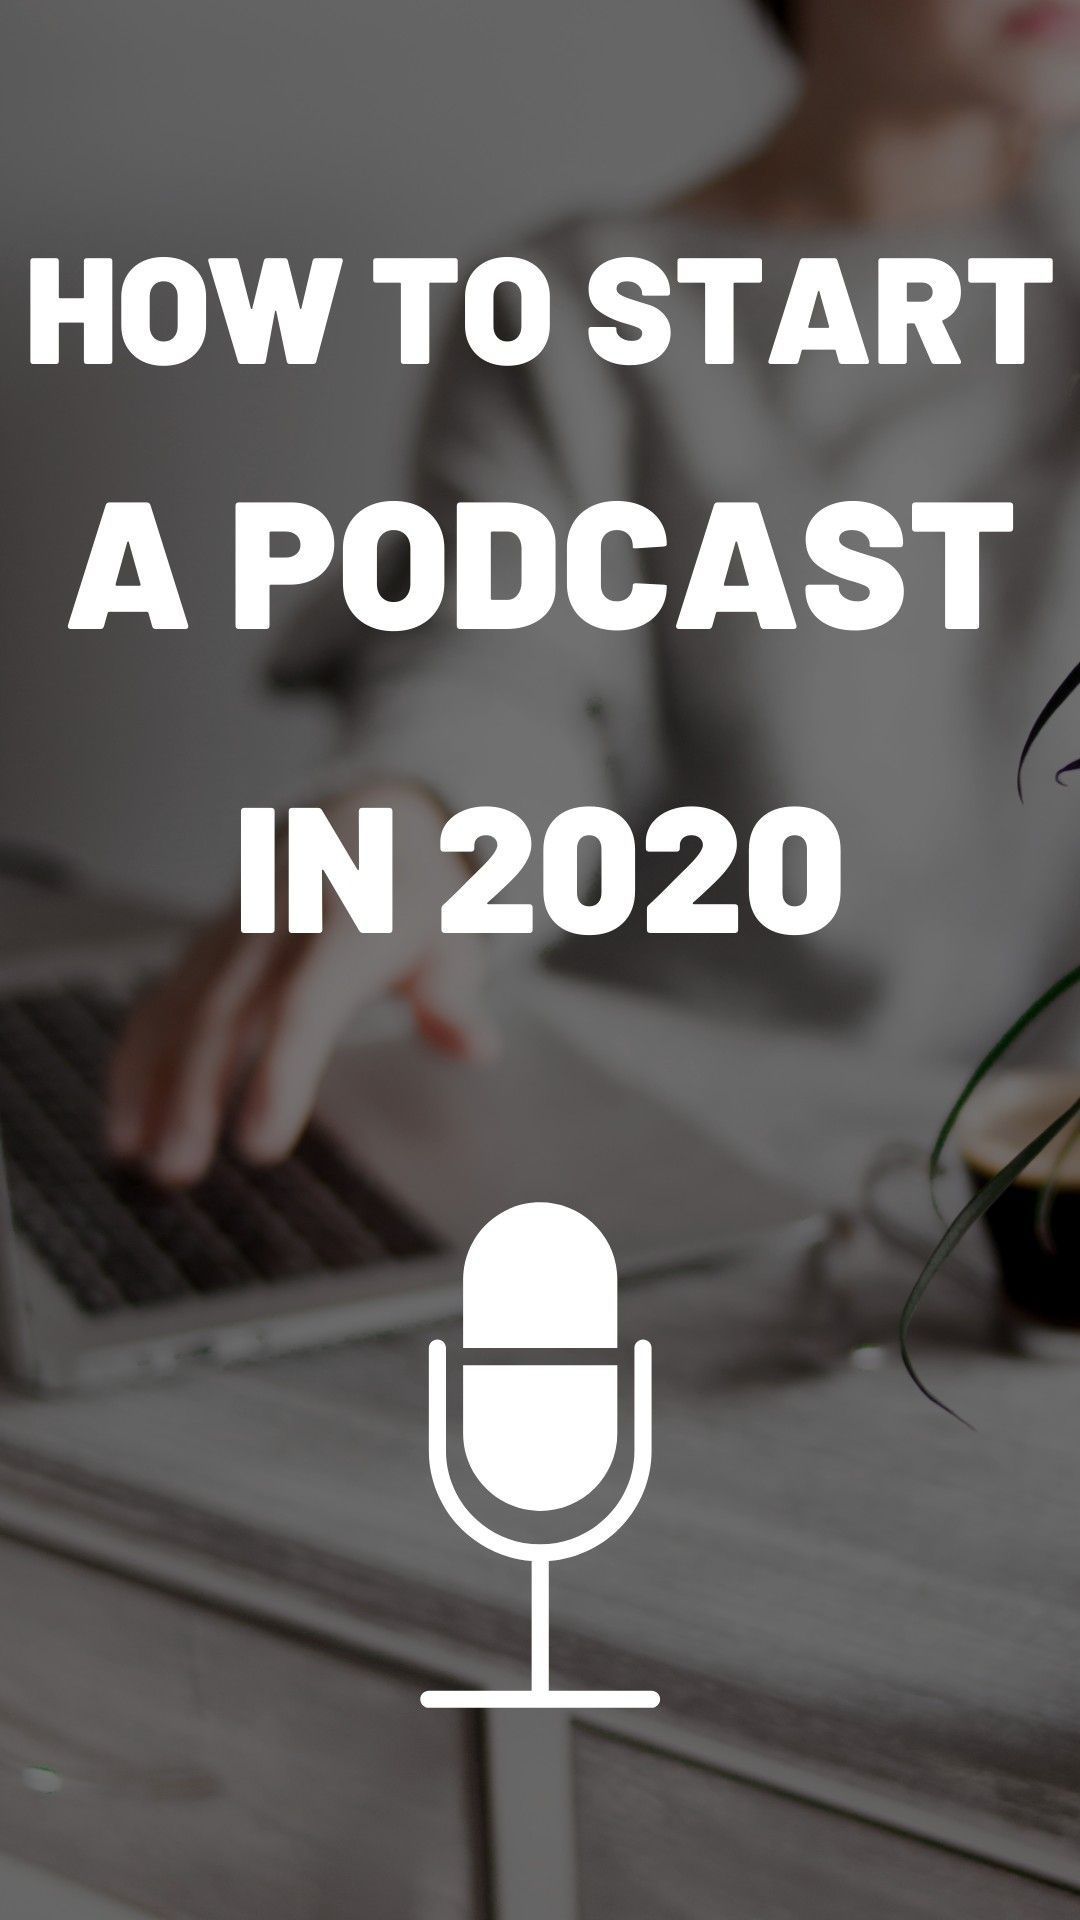 How to Start a Podcast in 2020 (Free Guide to Make Your